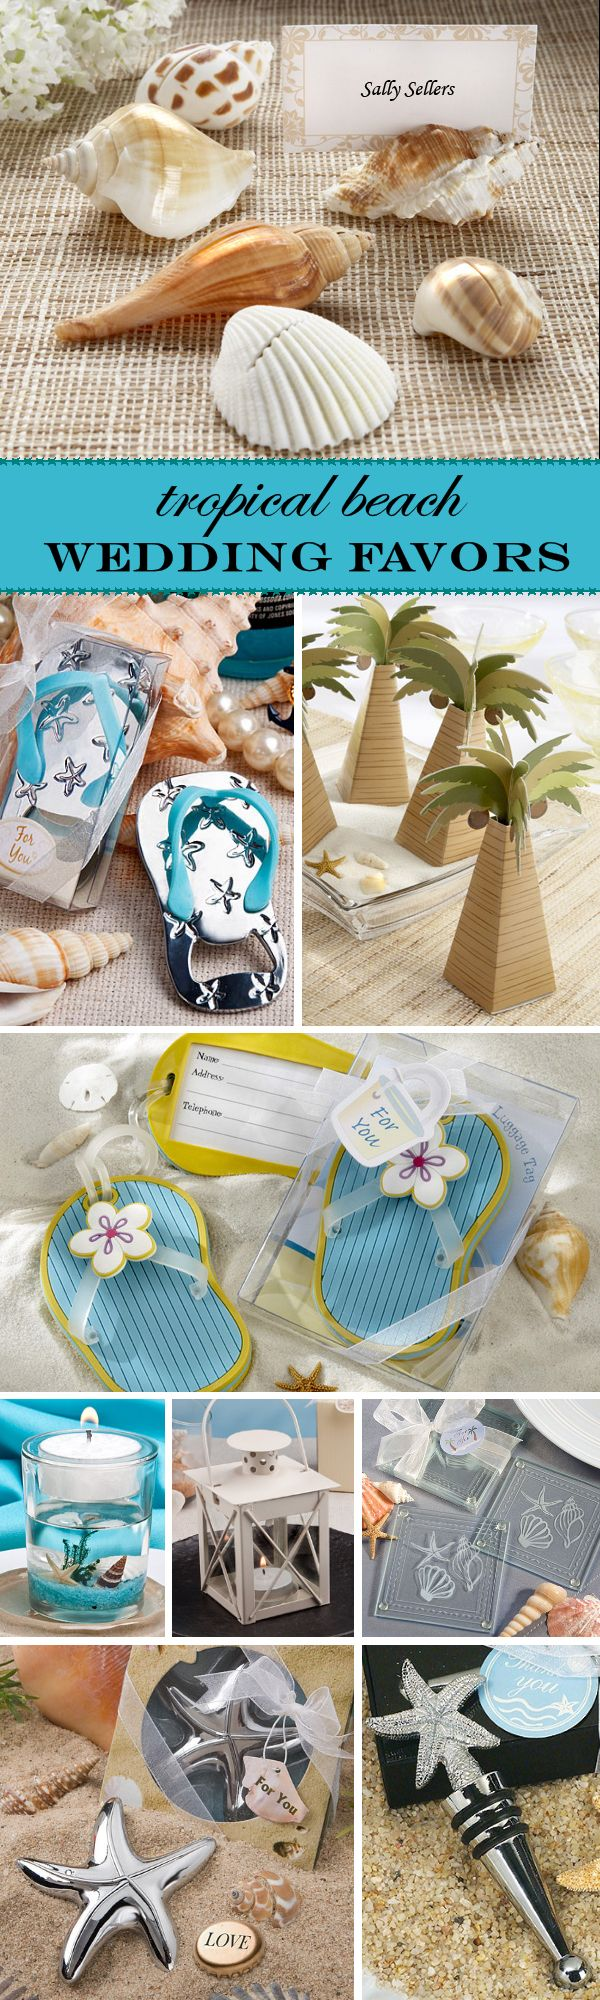 Amazing Tropical & Beach Themed Wedding Favor Ideas - love the flip flop luggage tags!